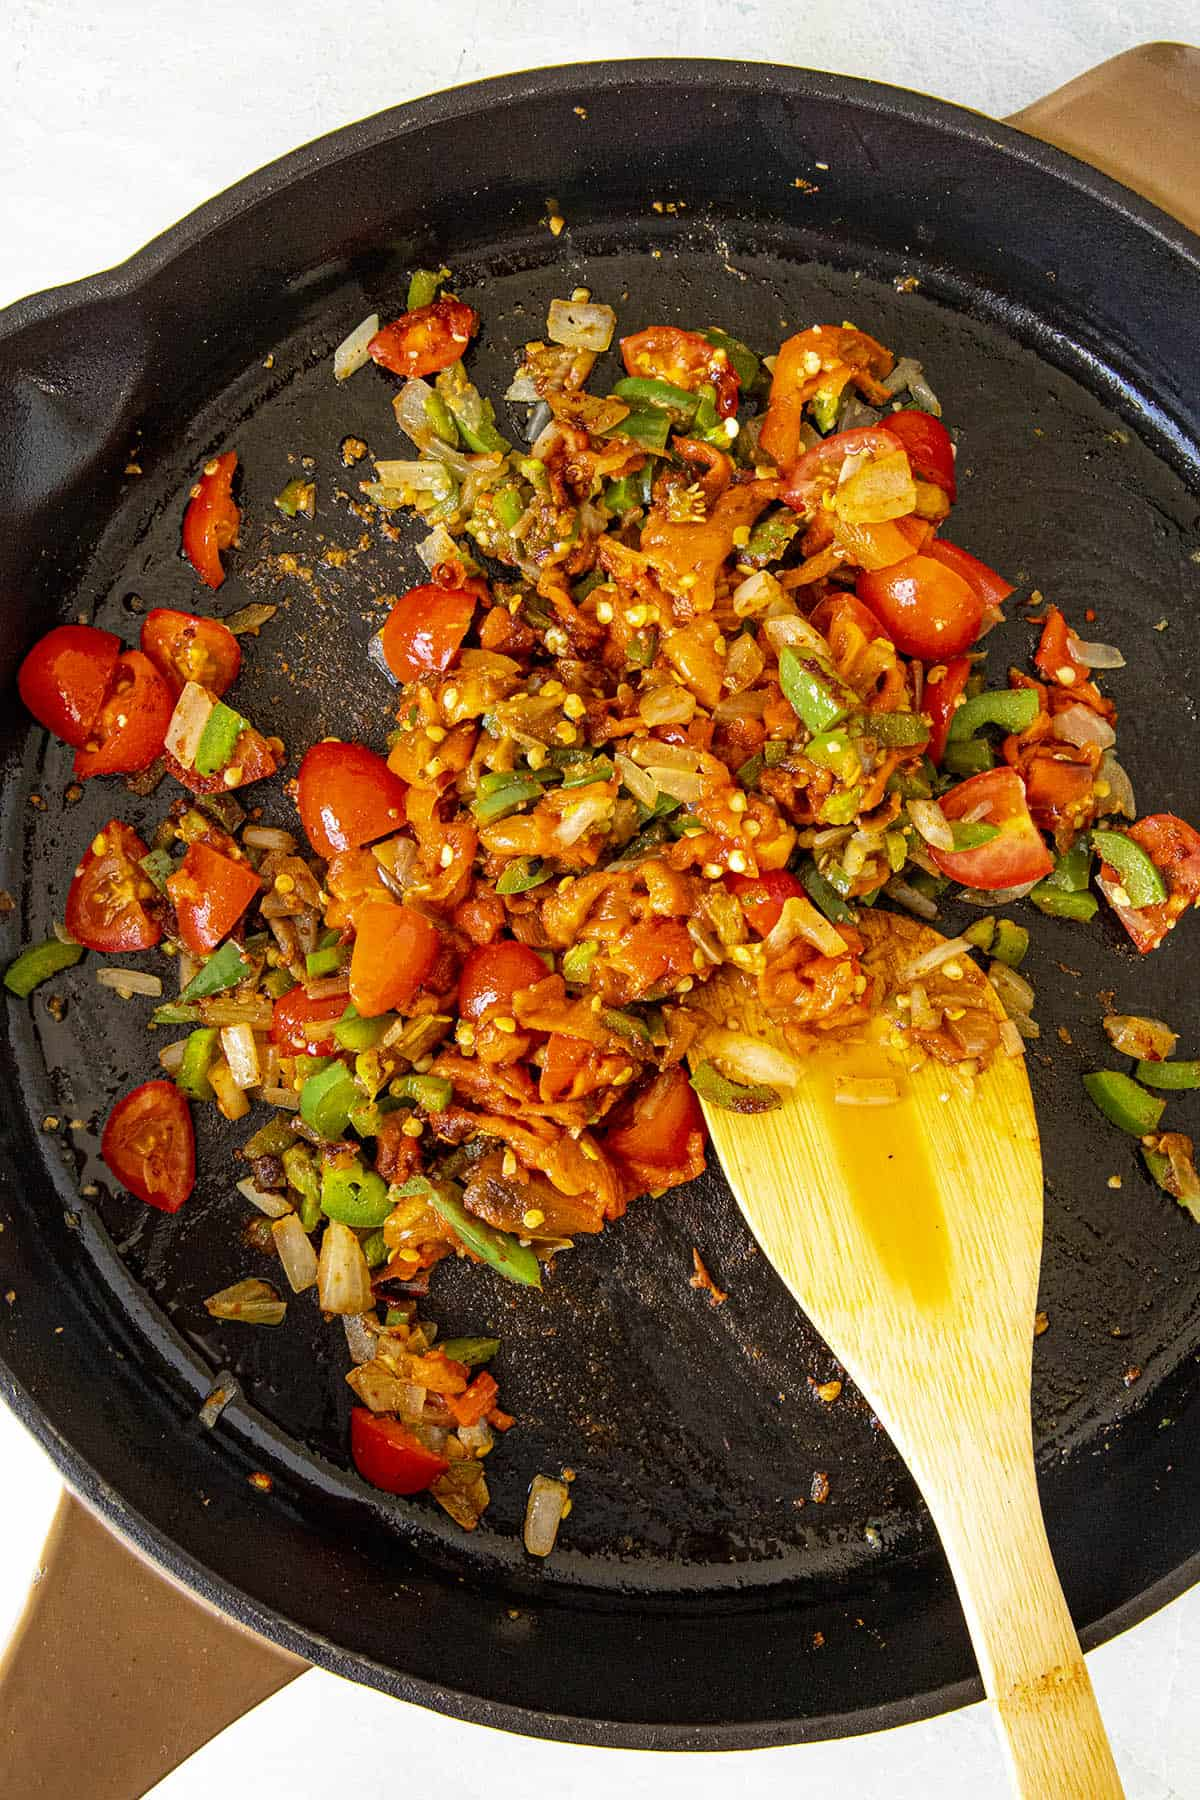 Cooking peppers, onions and tomatoes in a hot pan